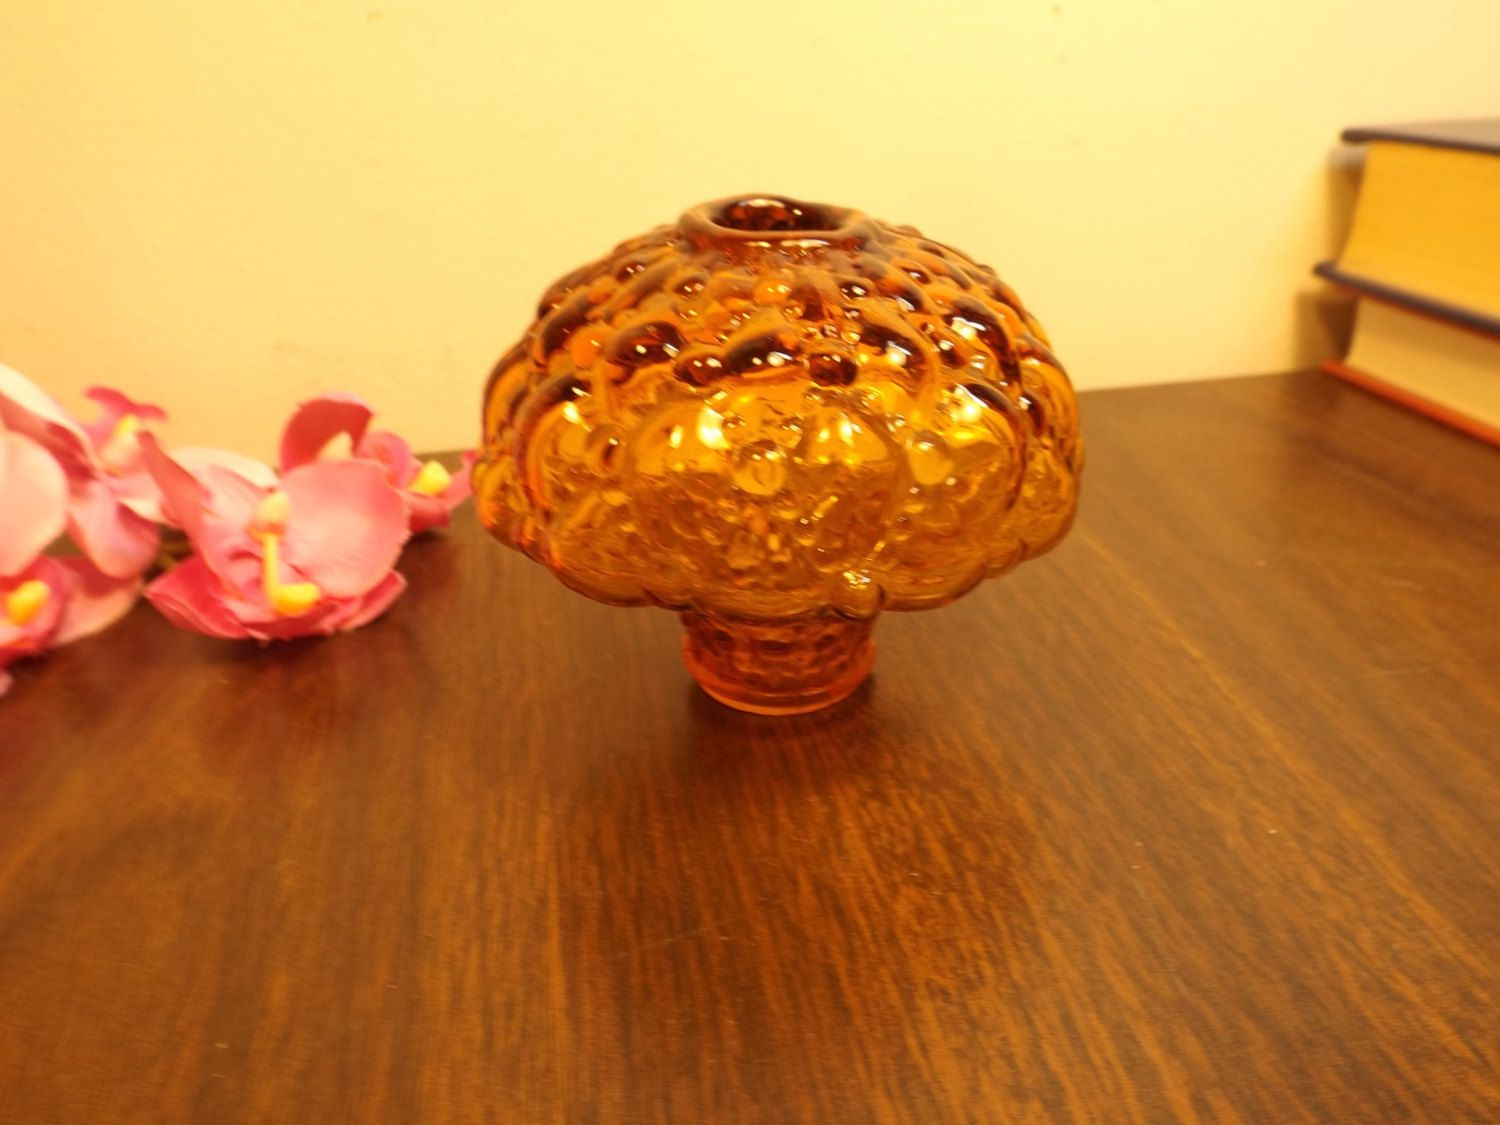 Antique hobnail glass amber lamp part ornate lamp shade holder antique hobnail glass amber lamp part ornate lamp shade holder mp decorationoil aloadofball Images